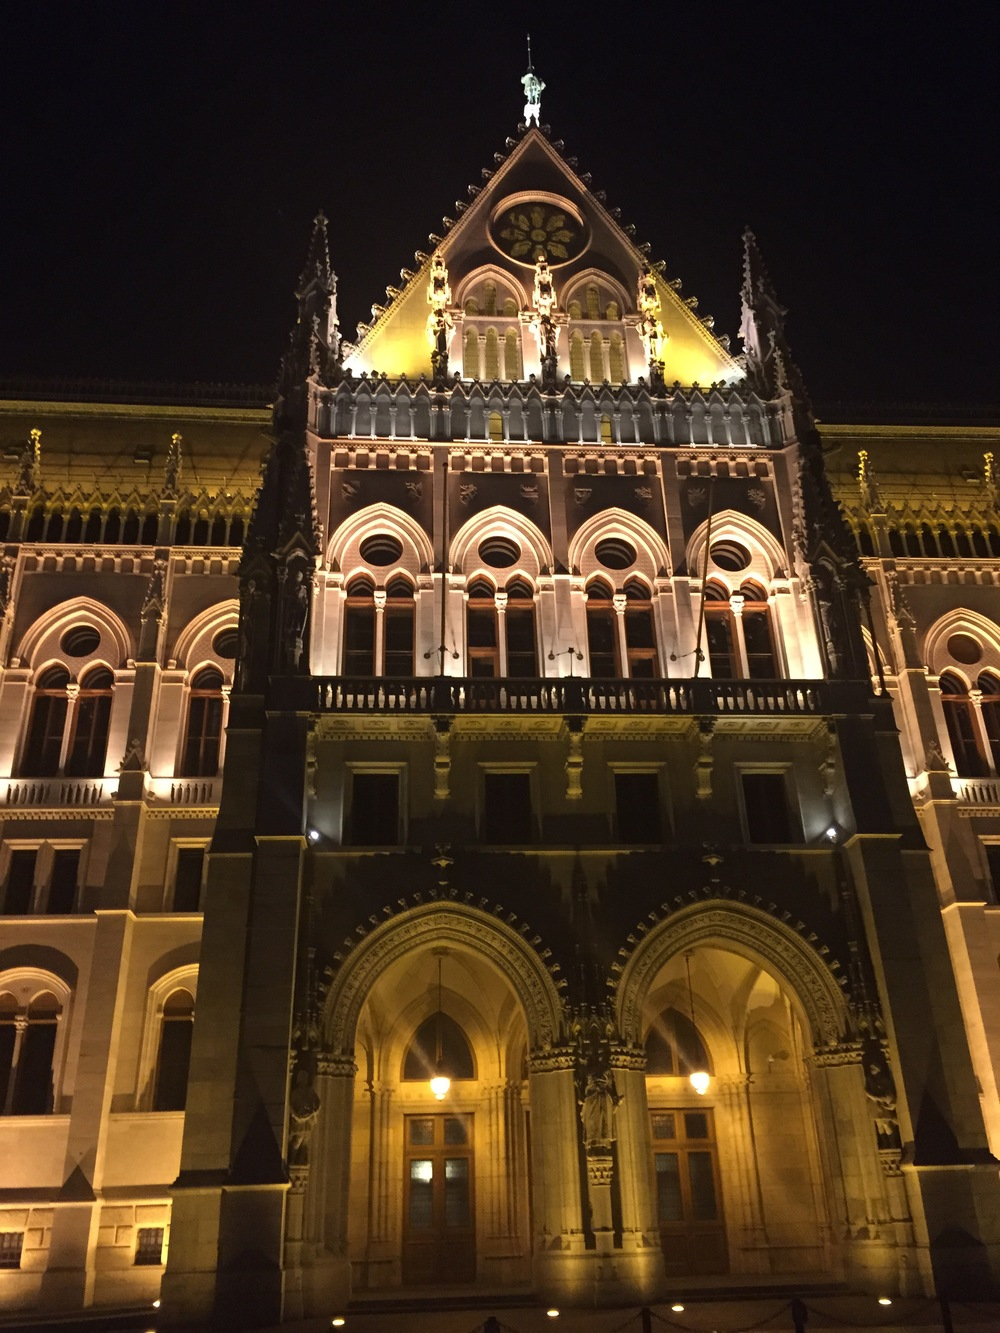 Crazy huge Budapest buildings light the sky at night! We were actually here during a political protest...very intense.